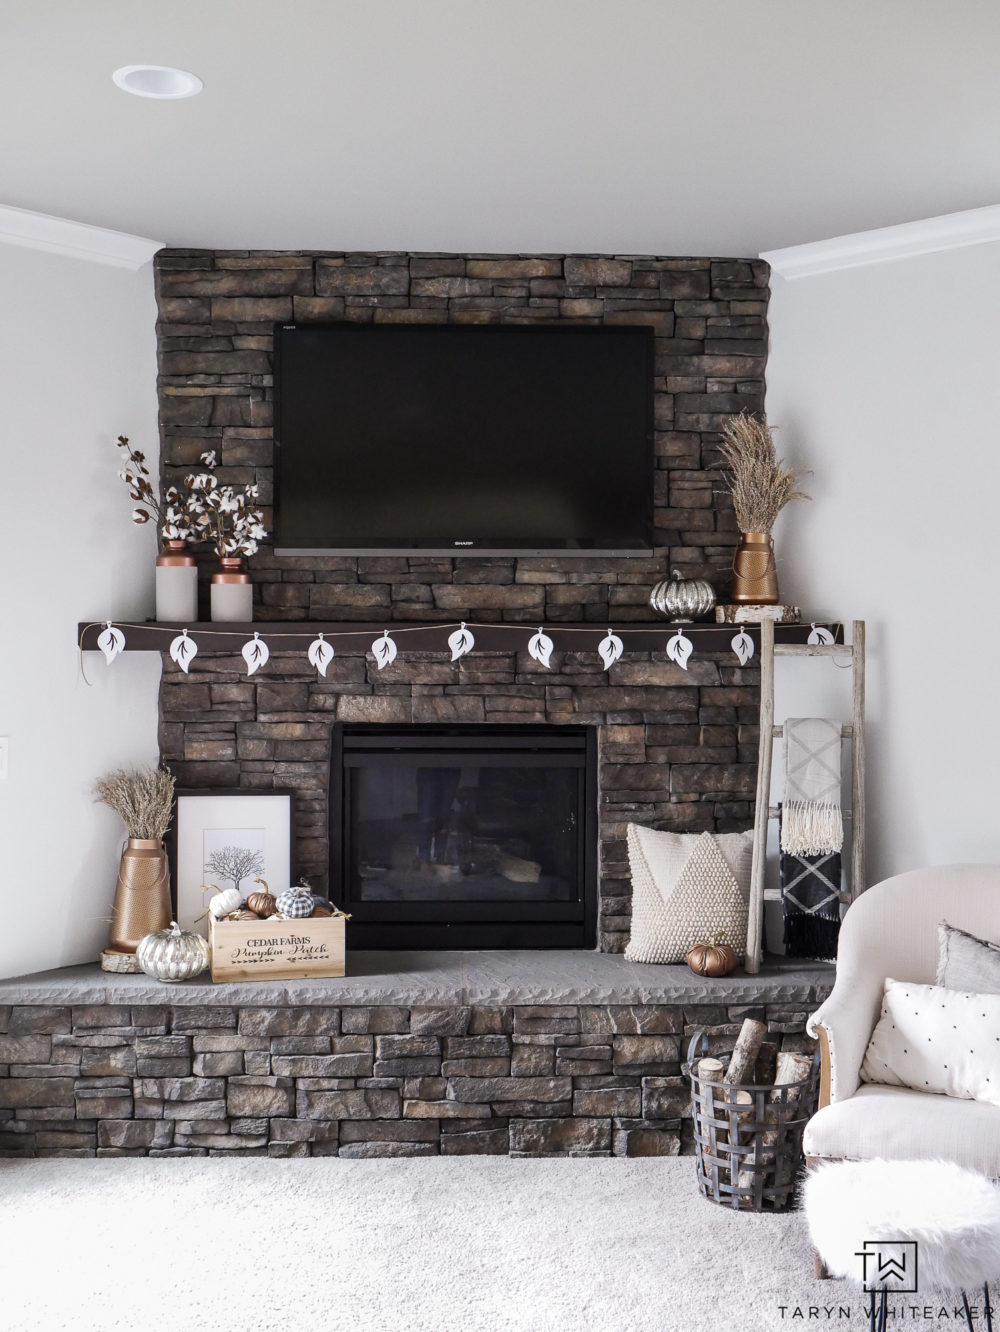 Dress up your family room for fall with this rustic yet chic neutral and copper fall mantel decor. Get the look by mixing lots of textures and metals!